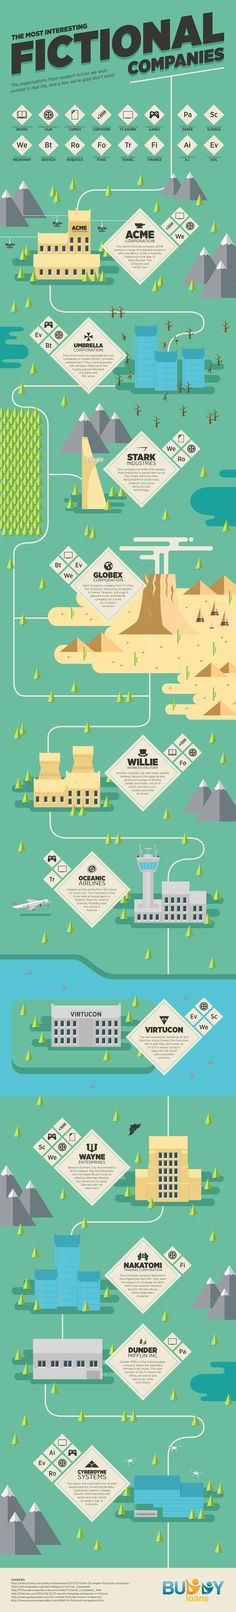 The most interesting fictional companies. (More design inspiration at www.aldenchong.com) #infographic